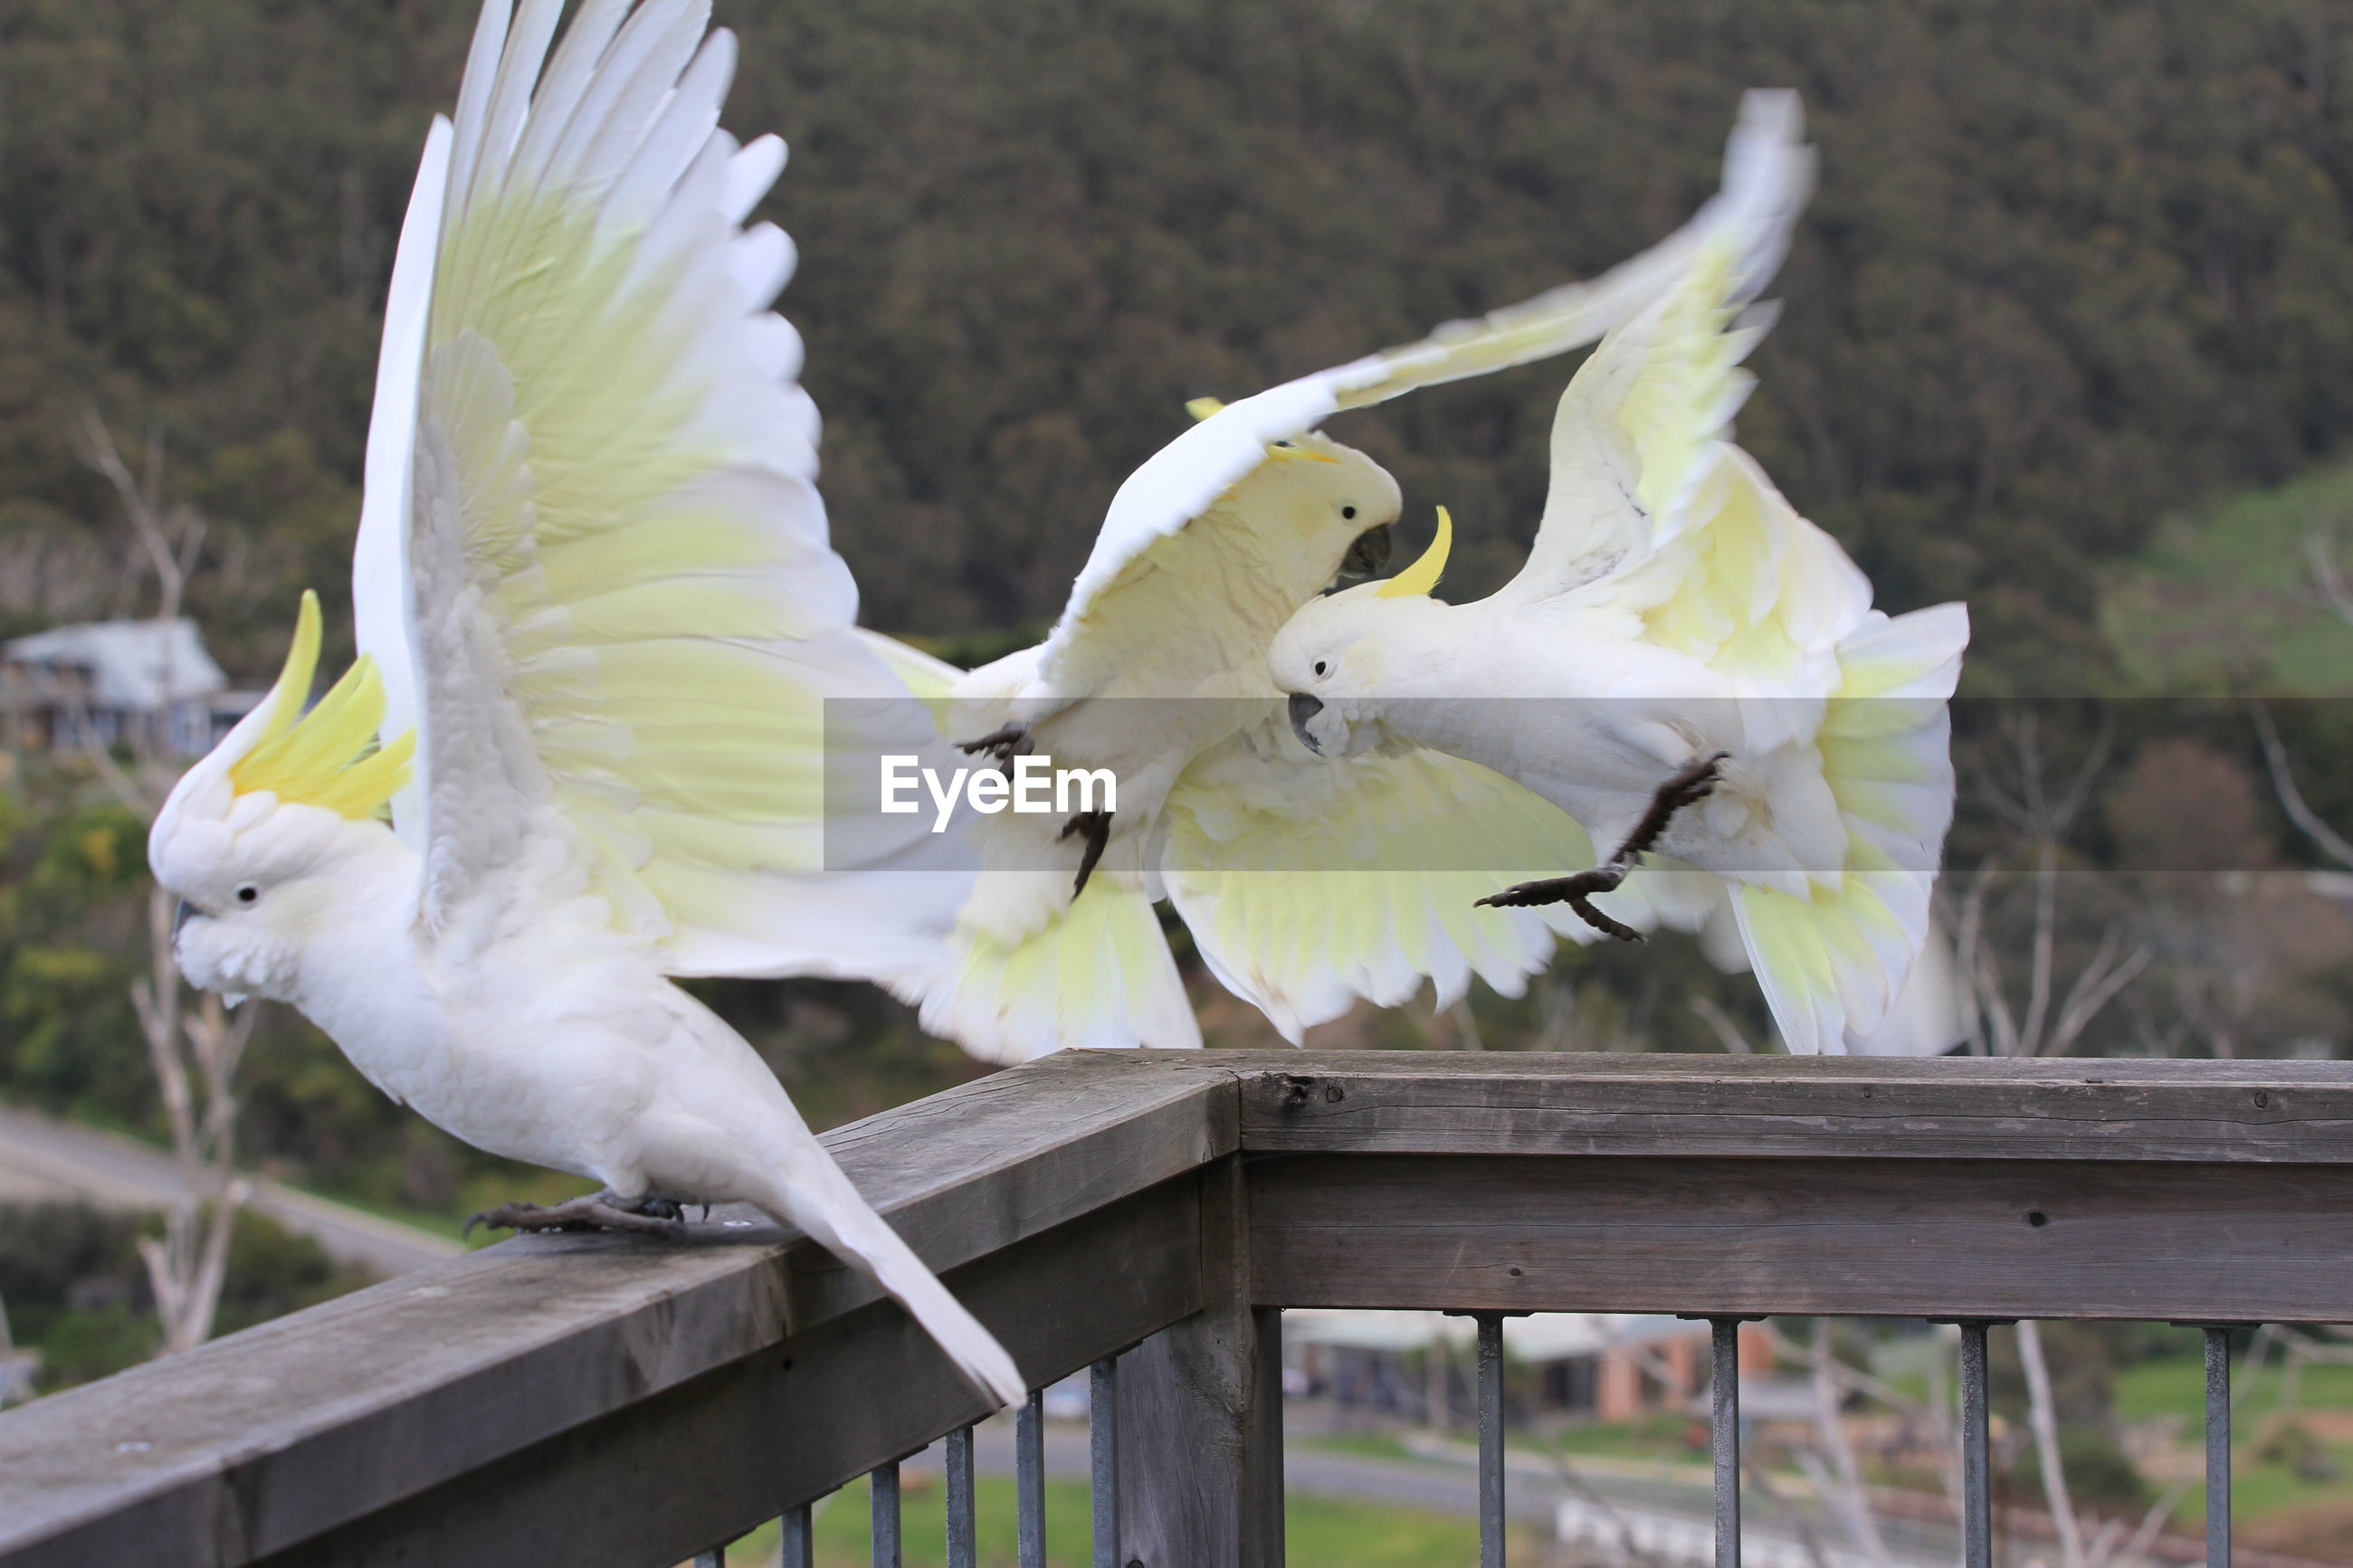 CLOSE-UP OF BIRDS FLYING AGAINST RAILING